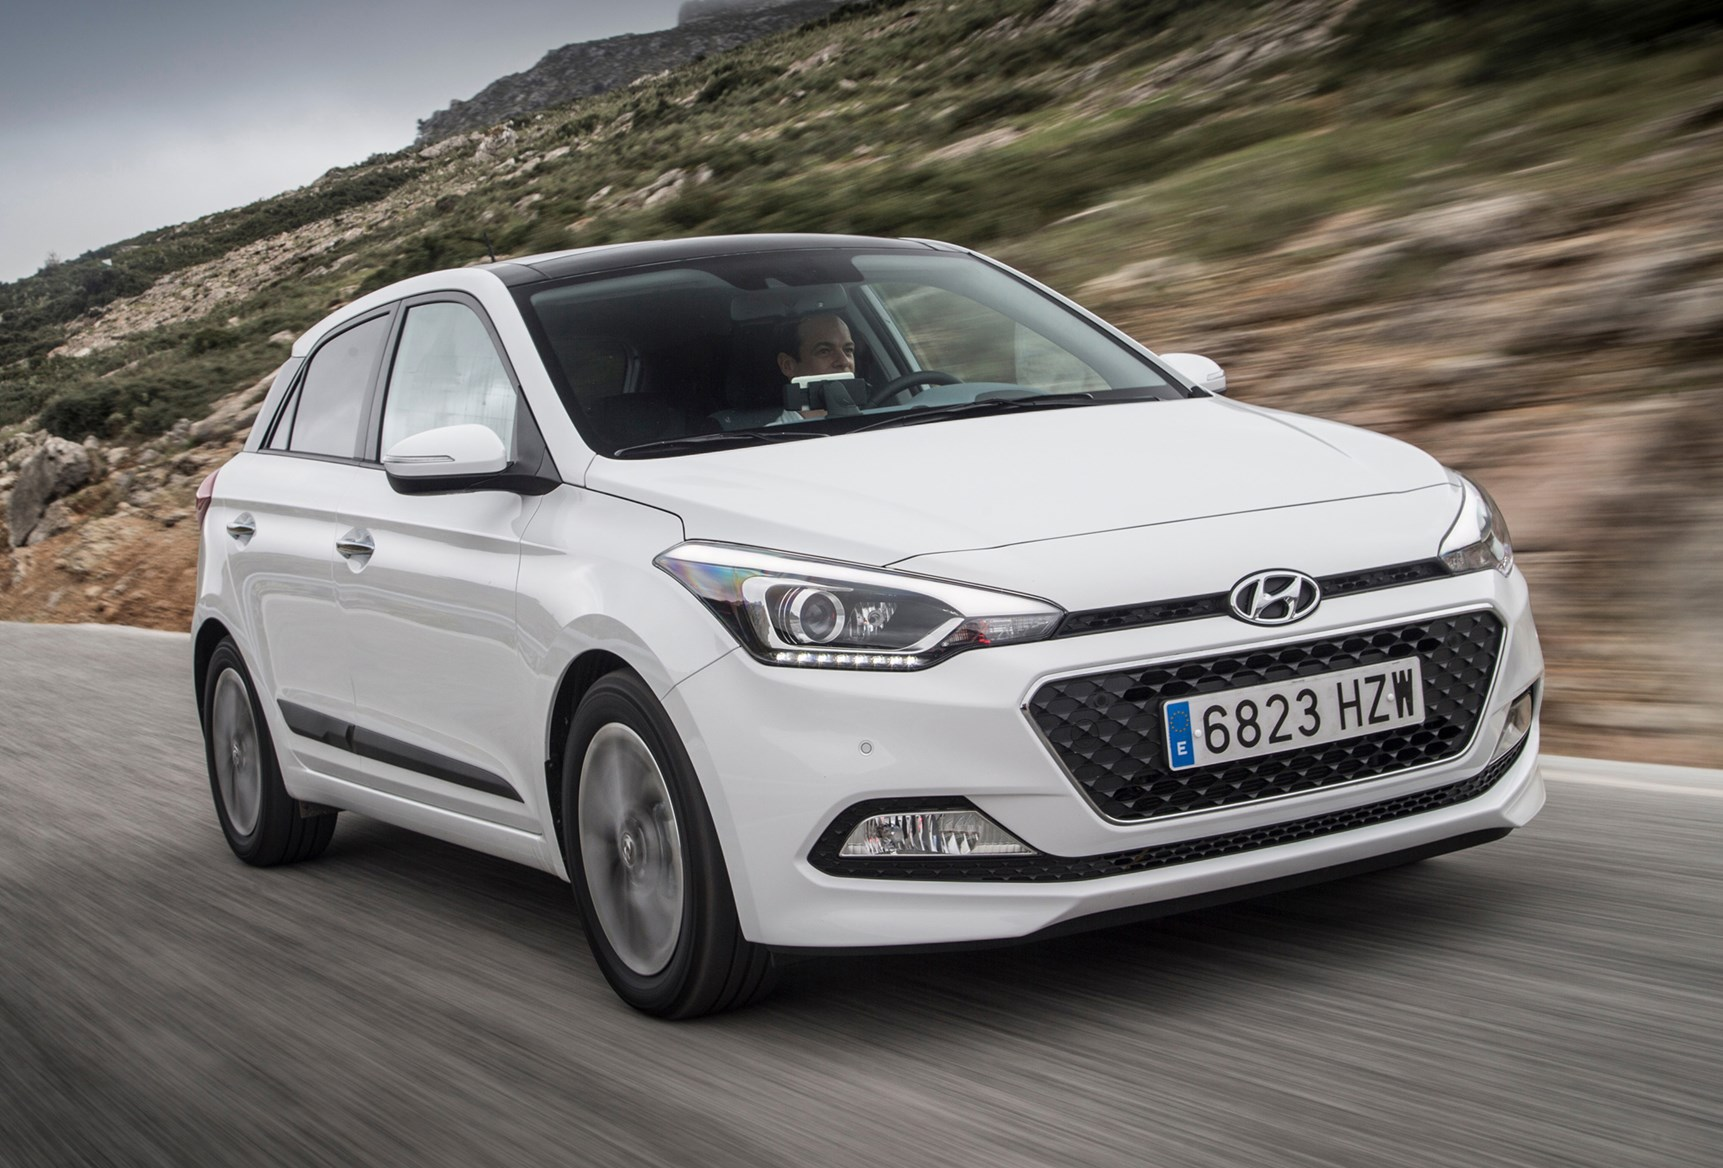 hyundai i20 hatchback review 2015 parkers. Black Bedroom Furniture Sets. Home Design Ideas